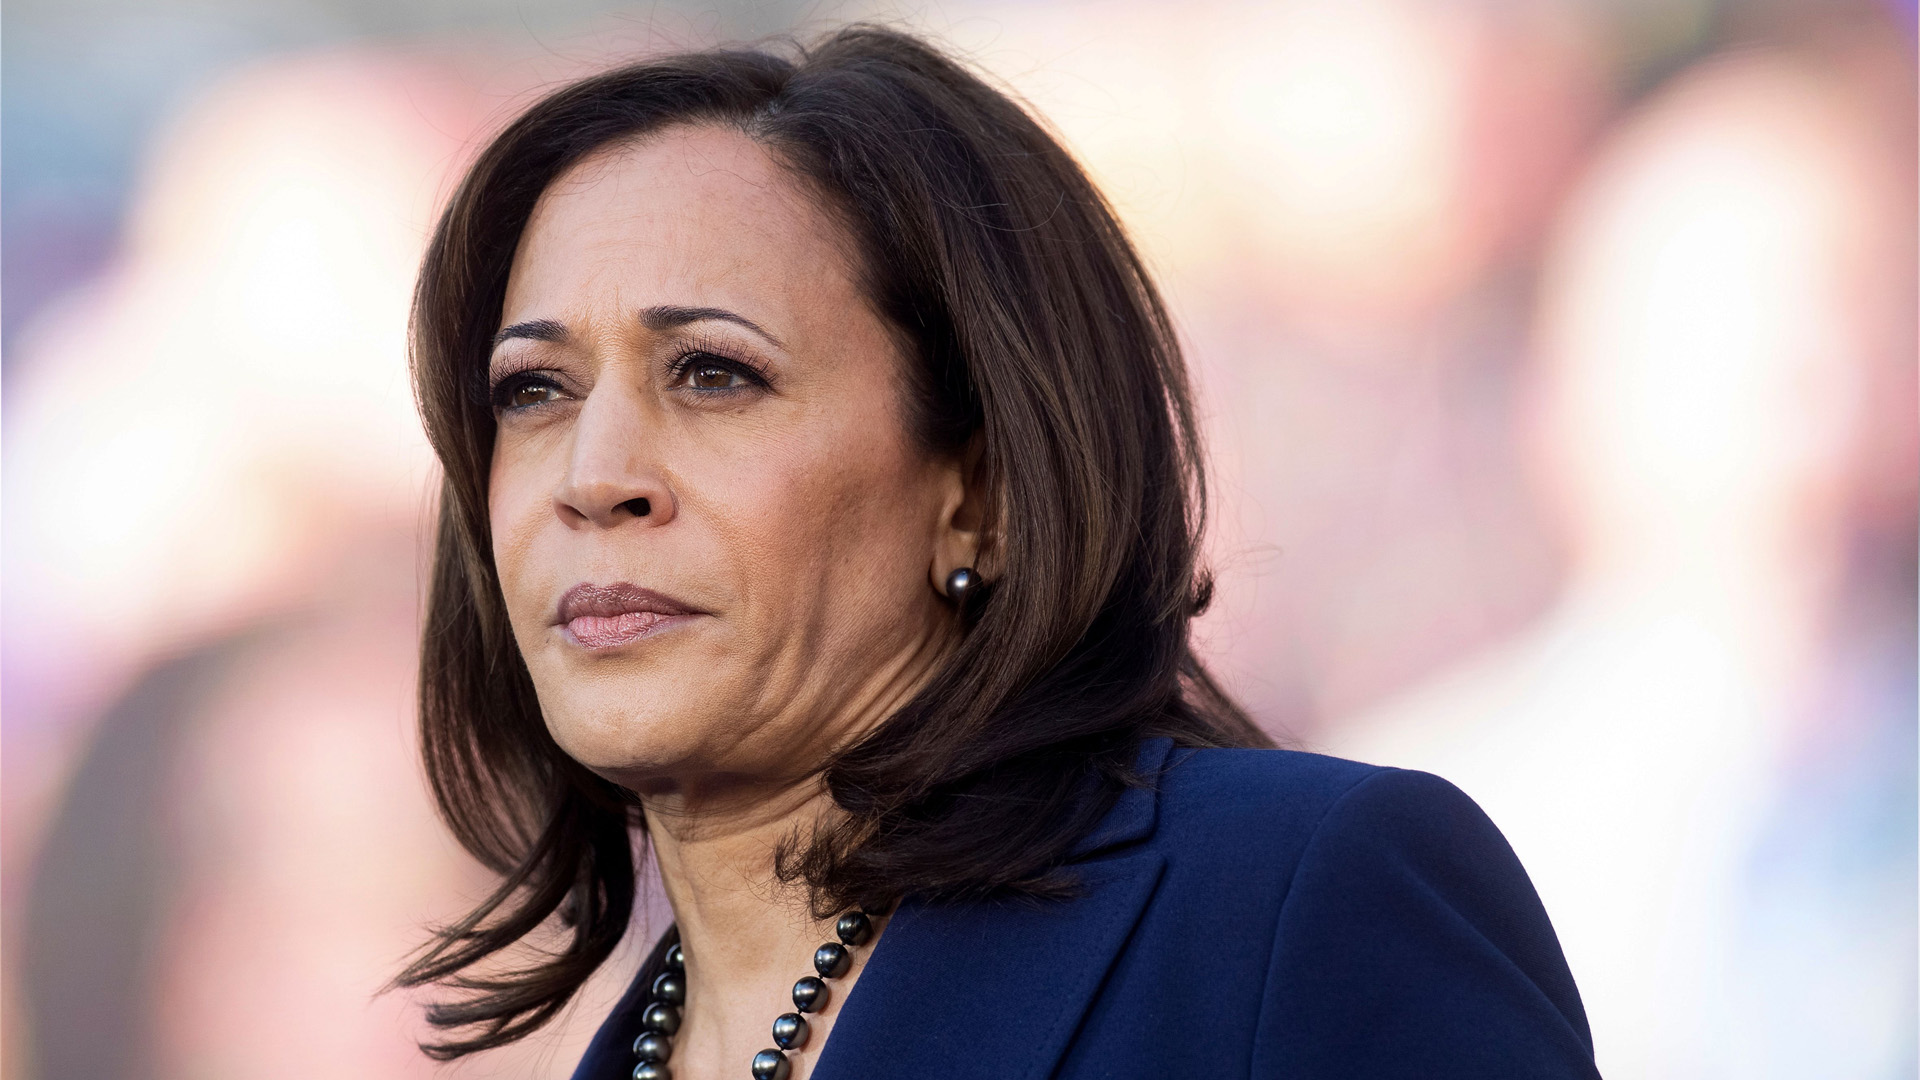 California Senator Kamala Harris looks on during a rally launching her presidential campaign on Jan. 27, 2019, in Oakland, California. (Credit: NOAH BERGER/AFP/Getty Images)